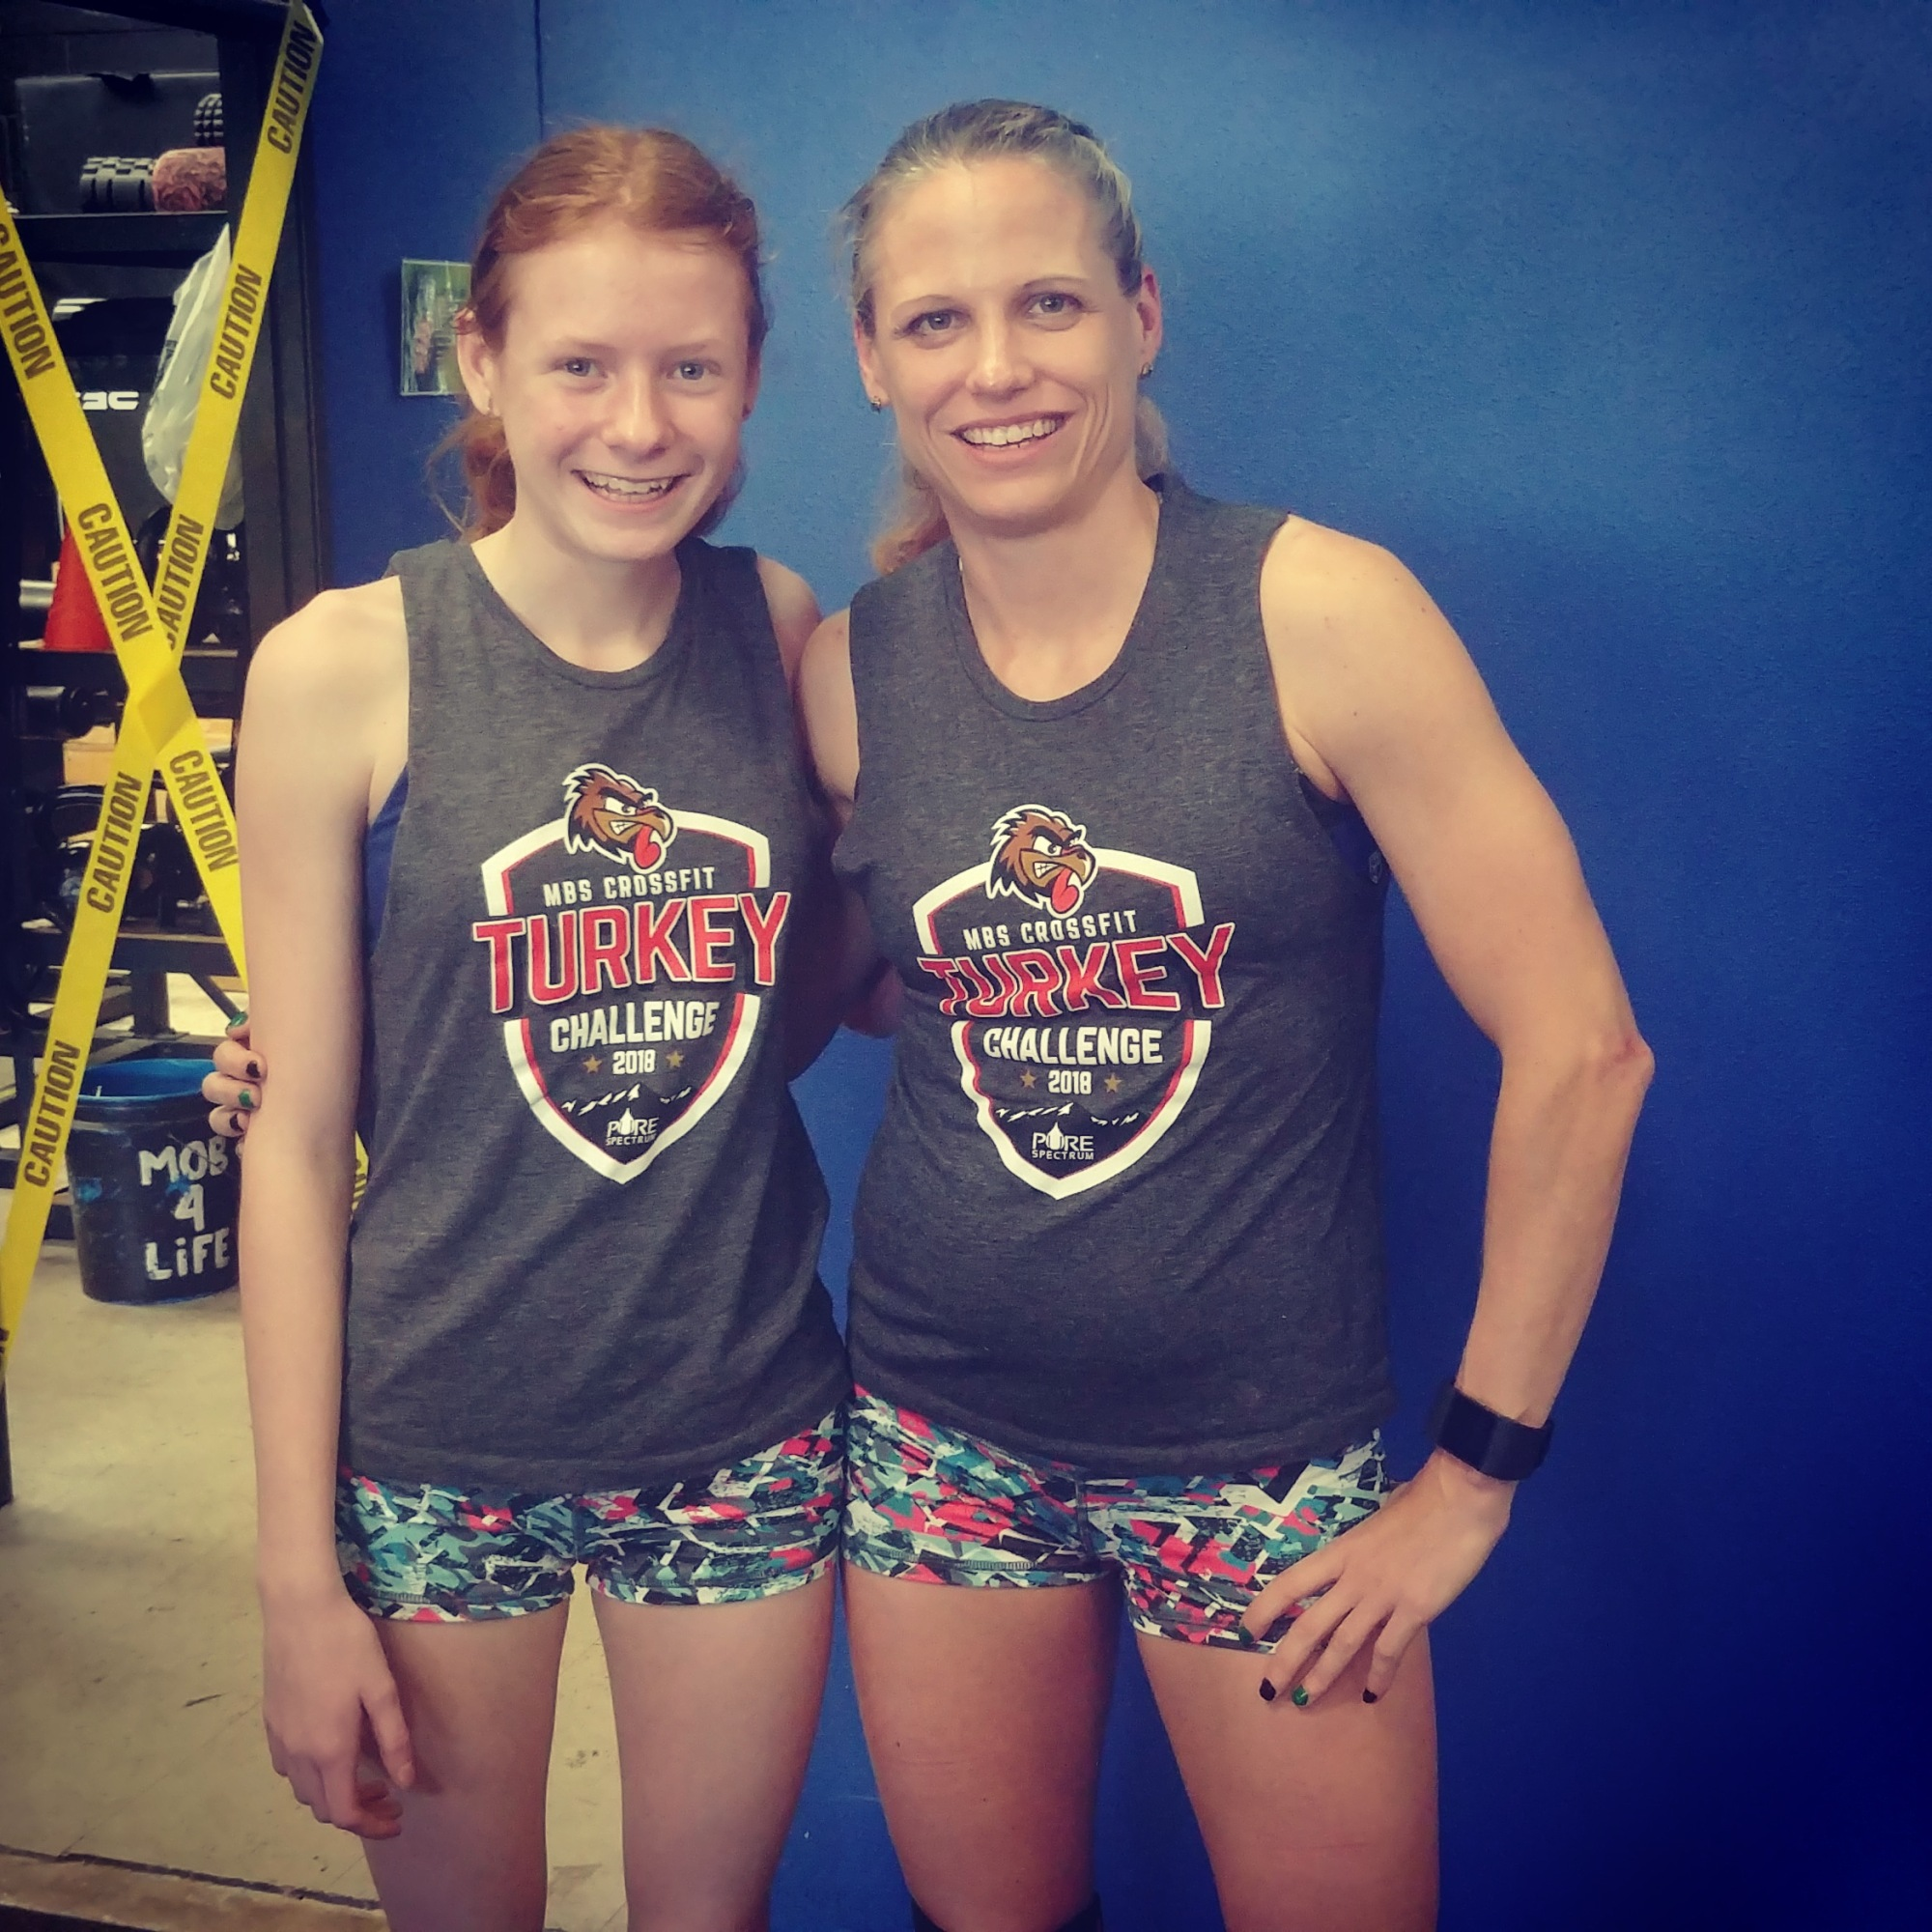 crossfitmomm doing crossfit competition at crossfit mob in denver hot crossfit chicks